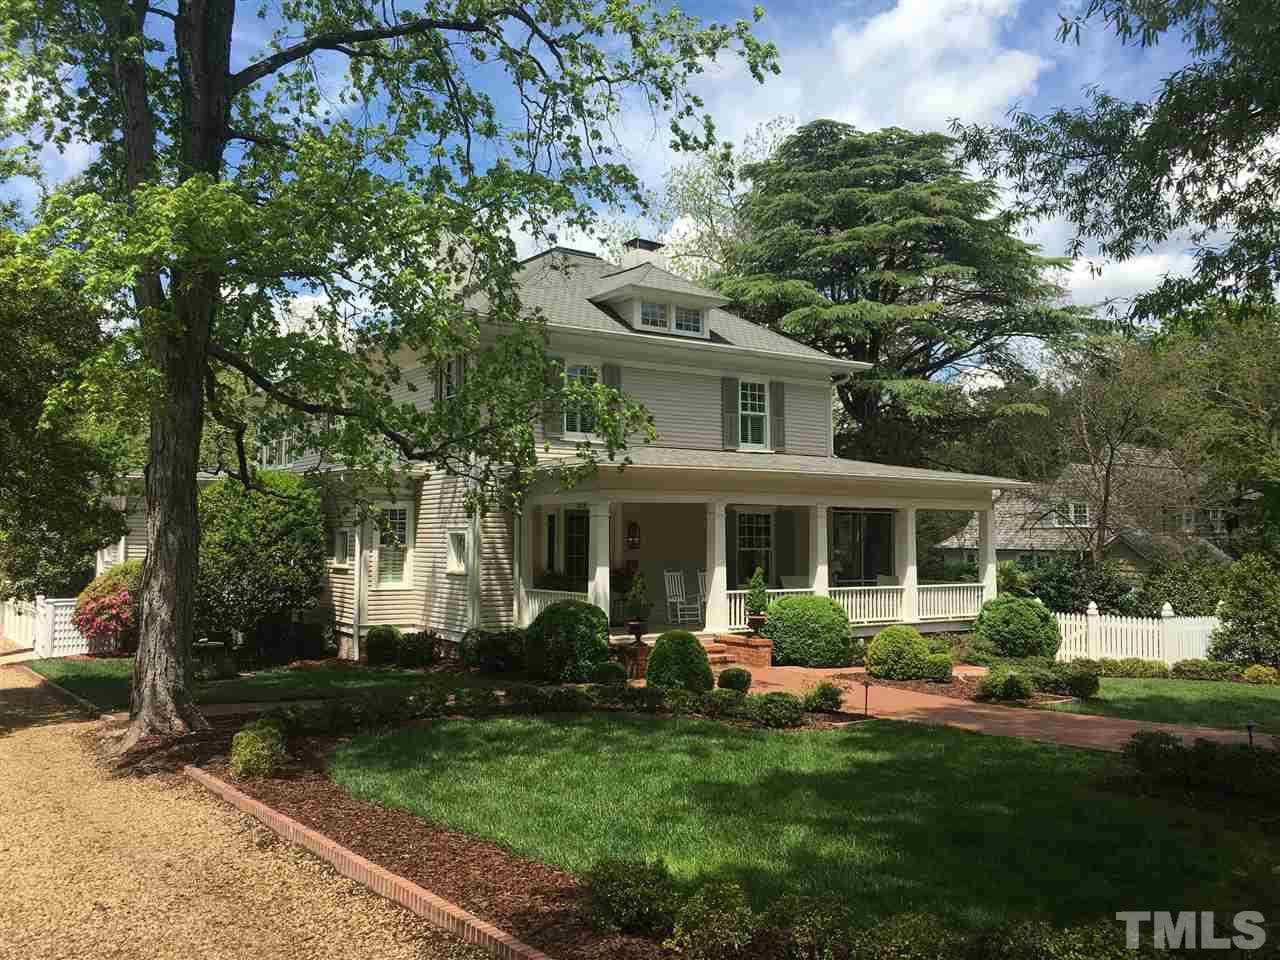 $2,145,000 - 4Br/4Ba -  for Sale in Historic District, Chapel Hill